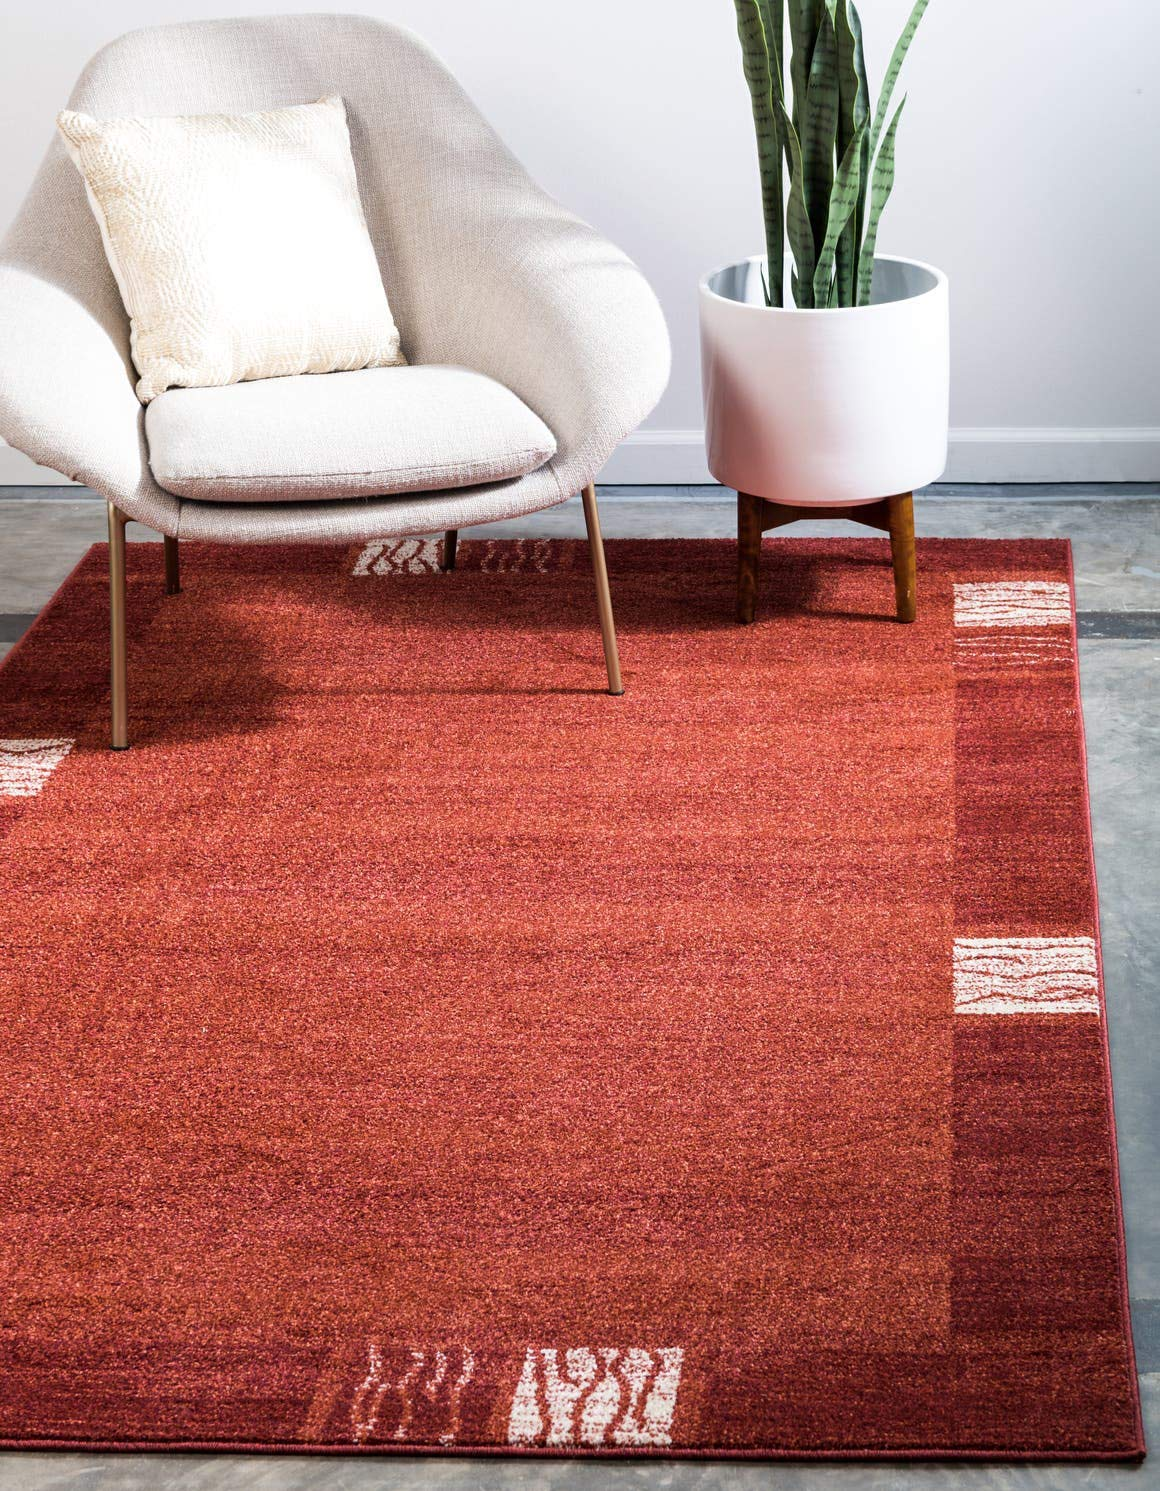 Unique Loom Del Mar Collection Contemporary Transitional Rust Red Area Rug 3 3 x 5 3